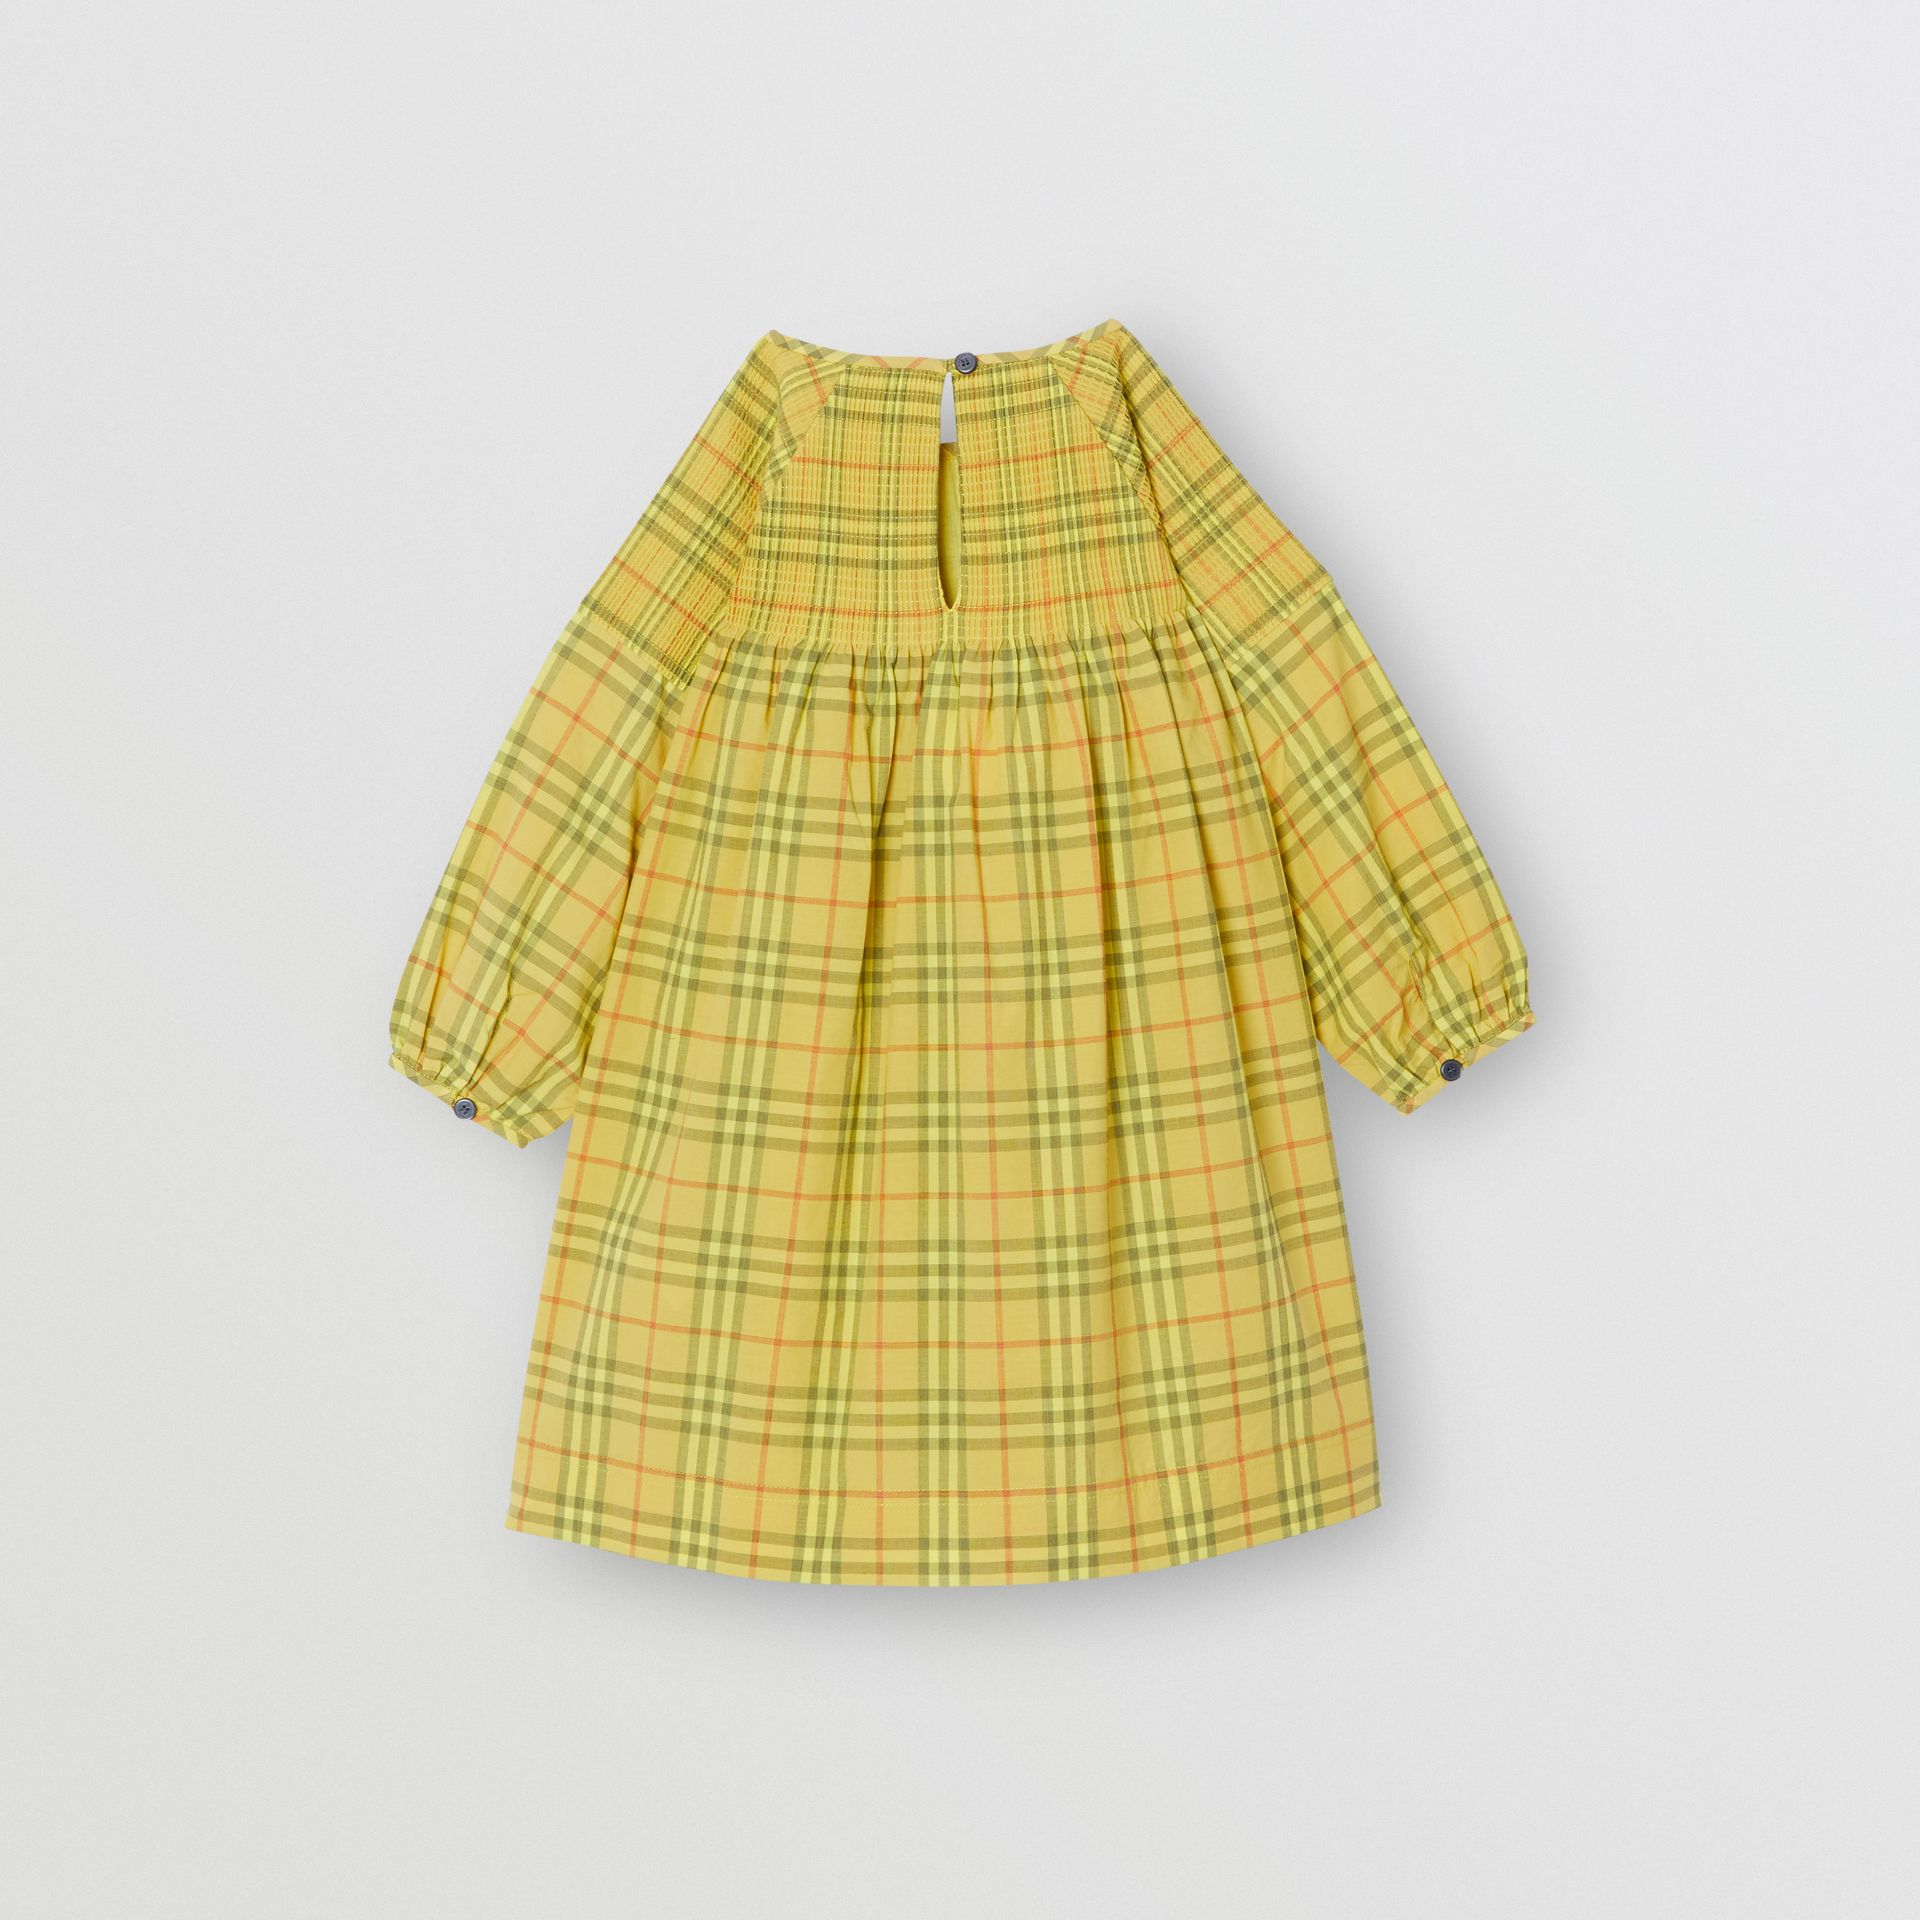 Smocked Check Cotton Dress in Citrus Yellow - Children | Burberry - gallery image 3